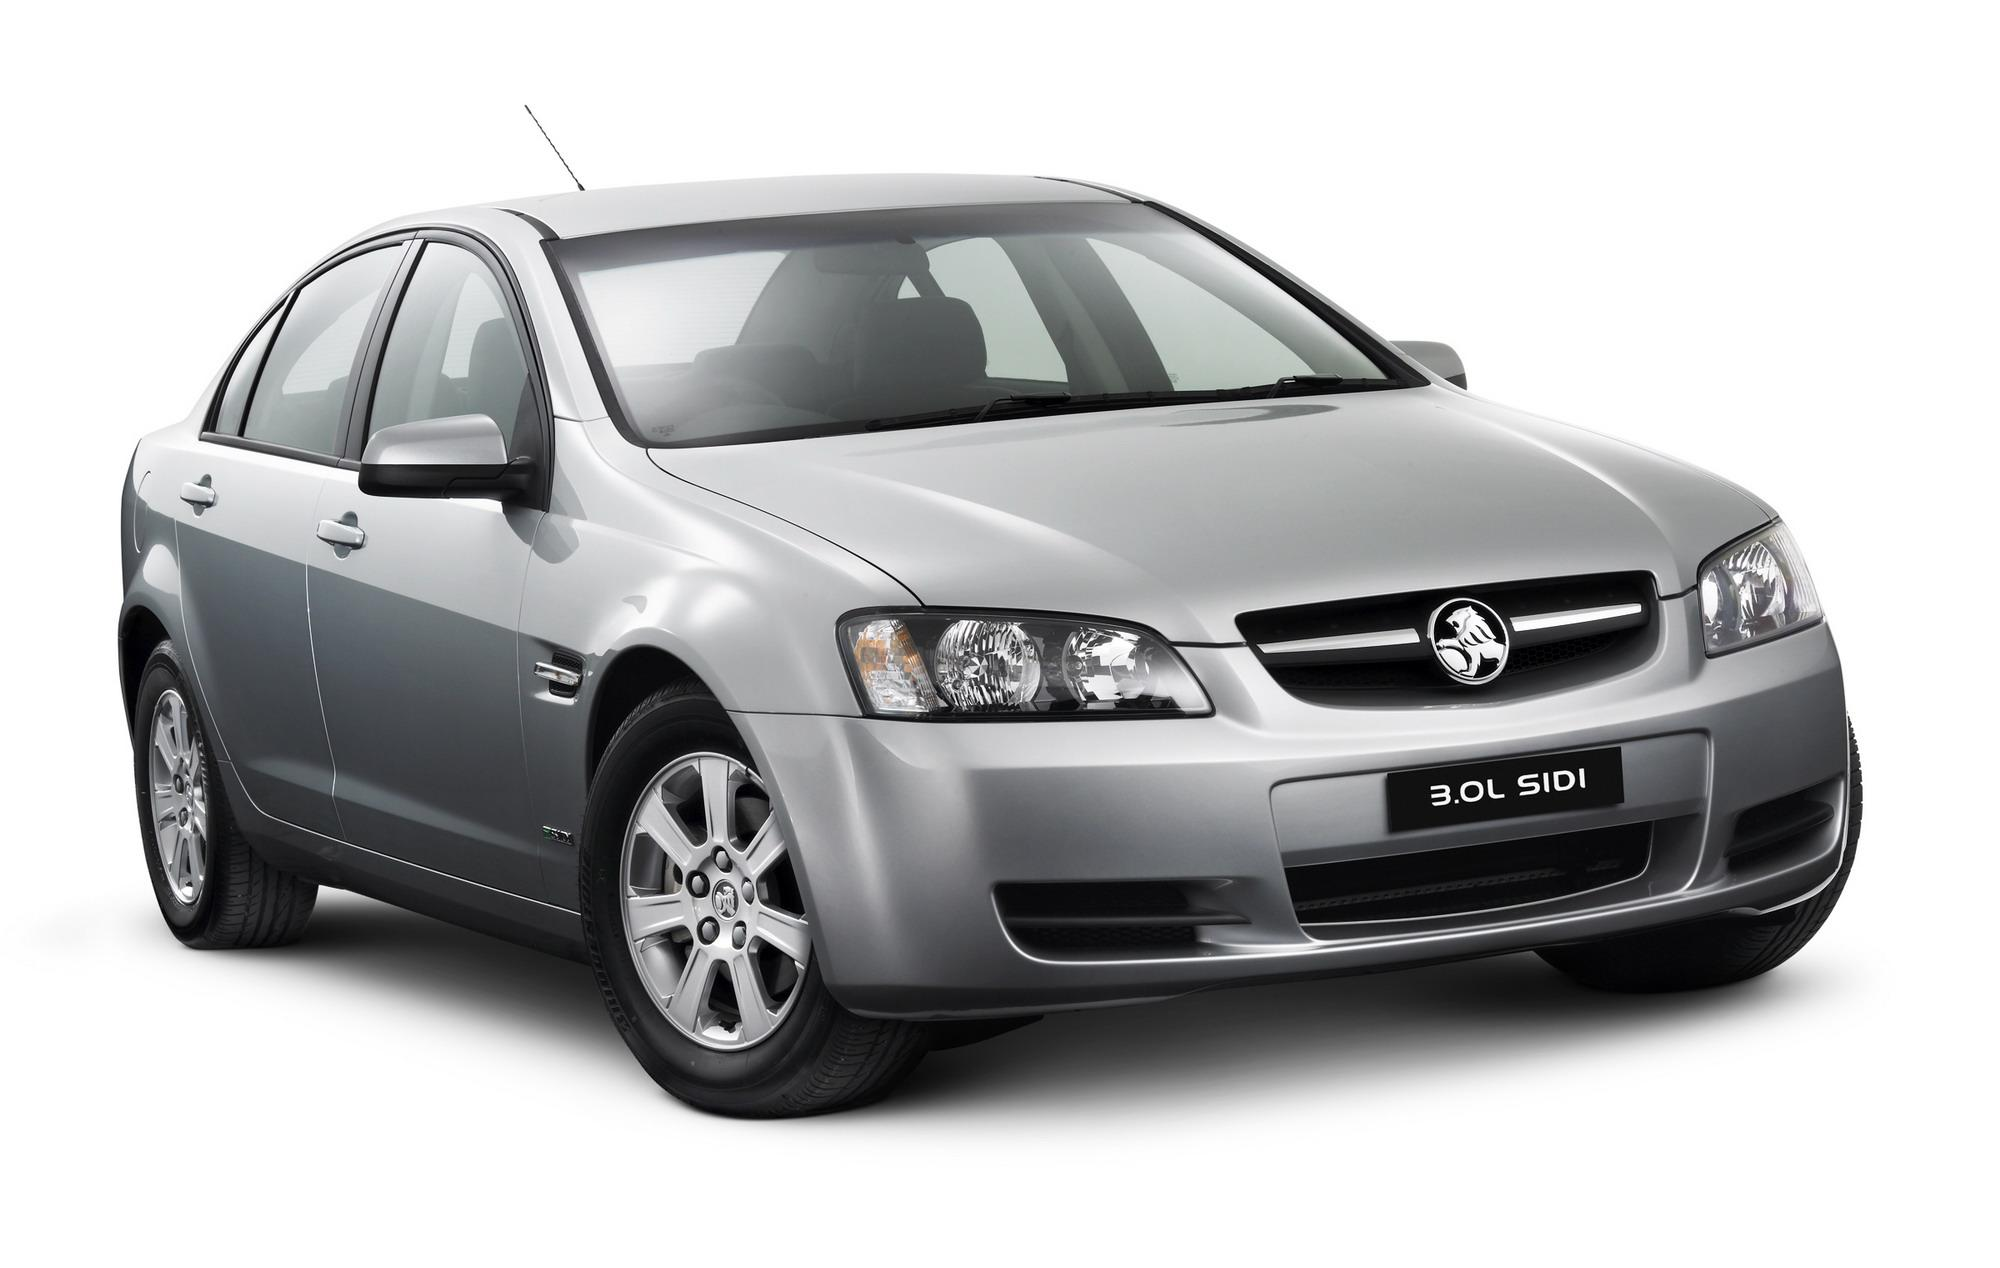 2010 holden commodore top speed